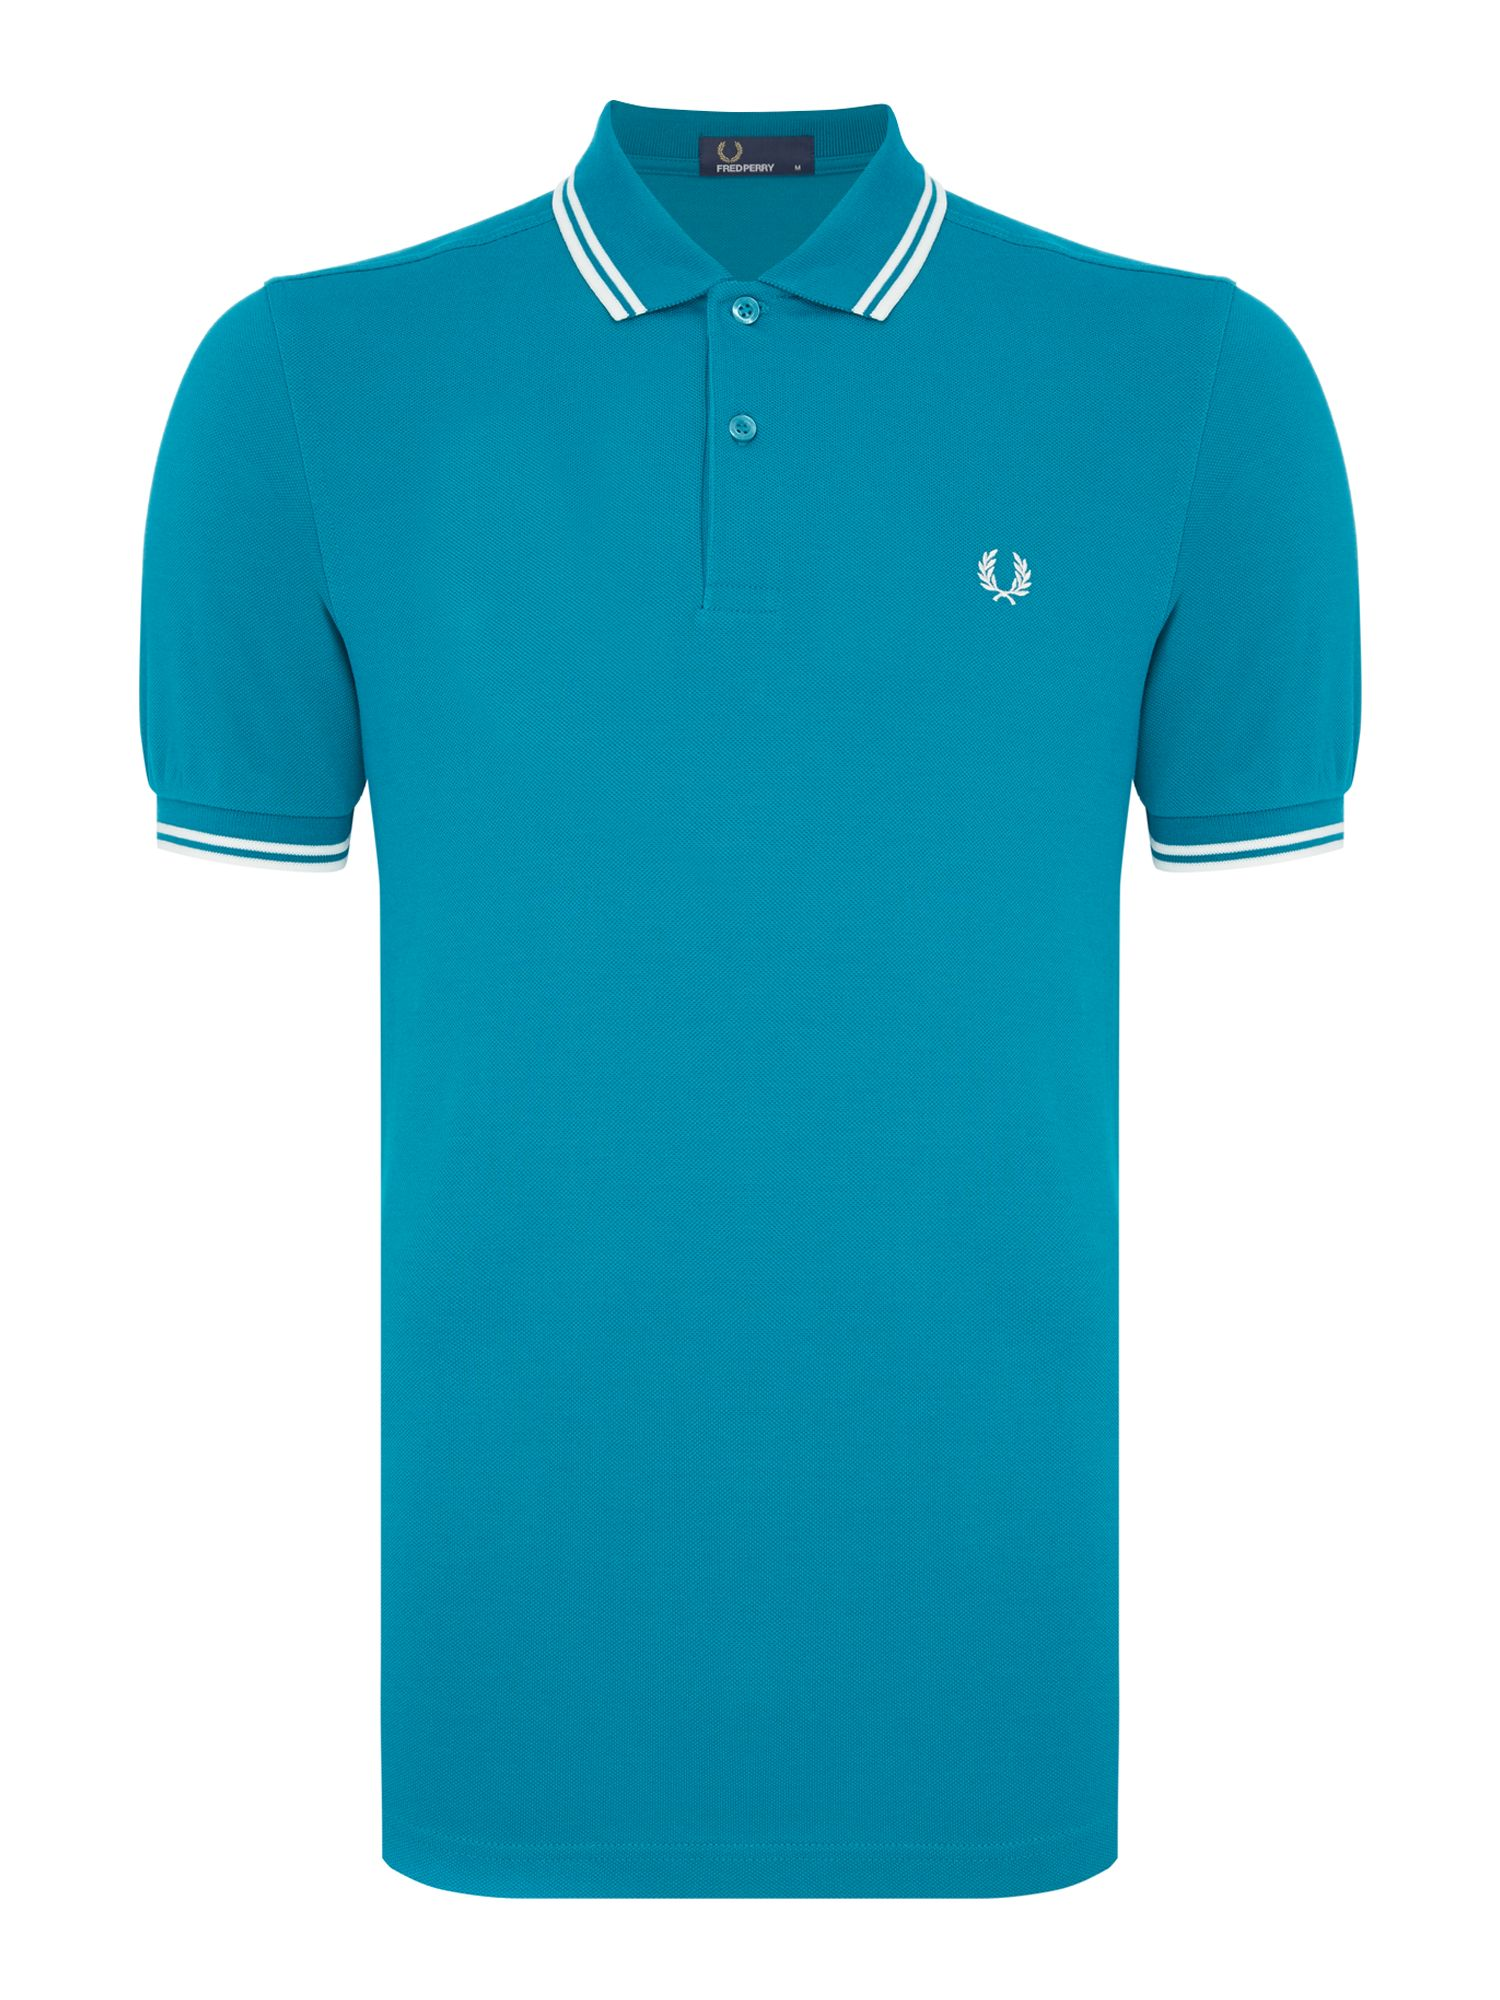 Mens Fred Perry Plain Twin Tipped Polo Shirt Green